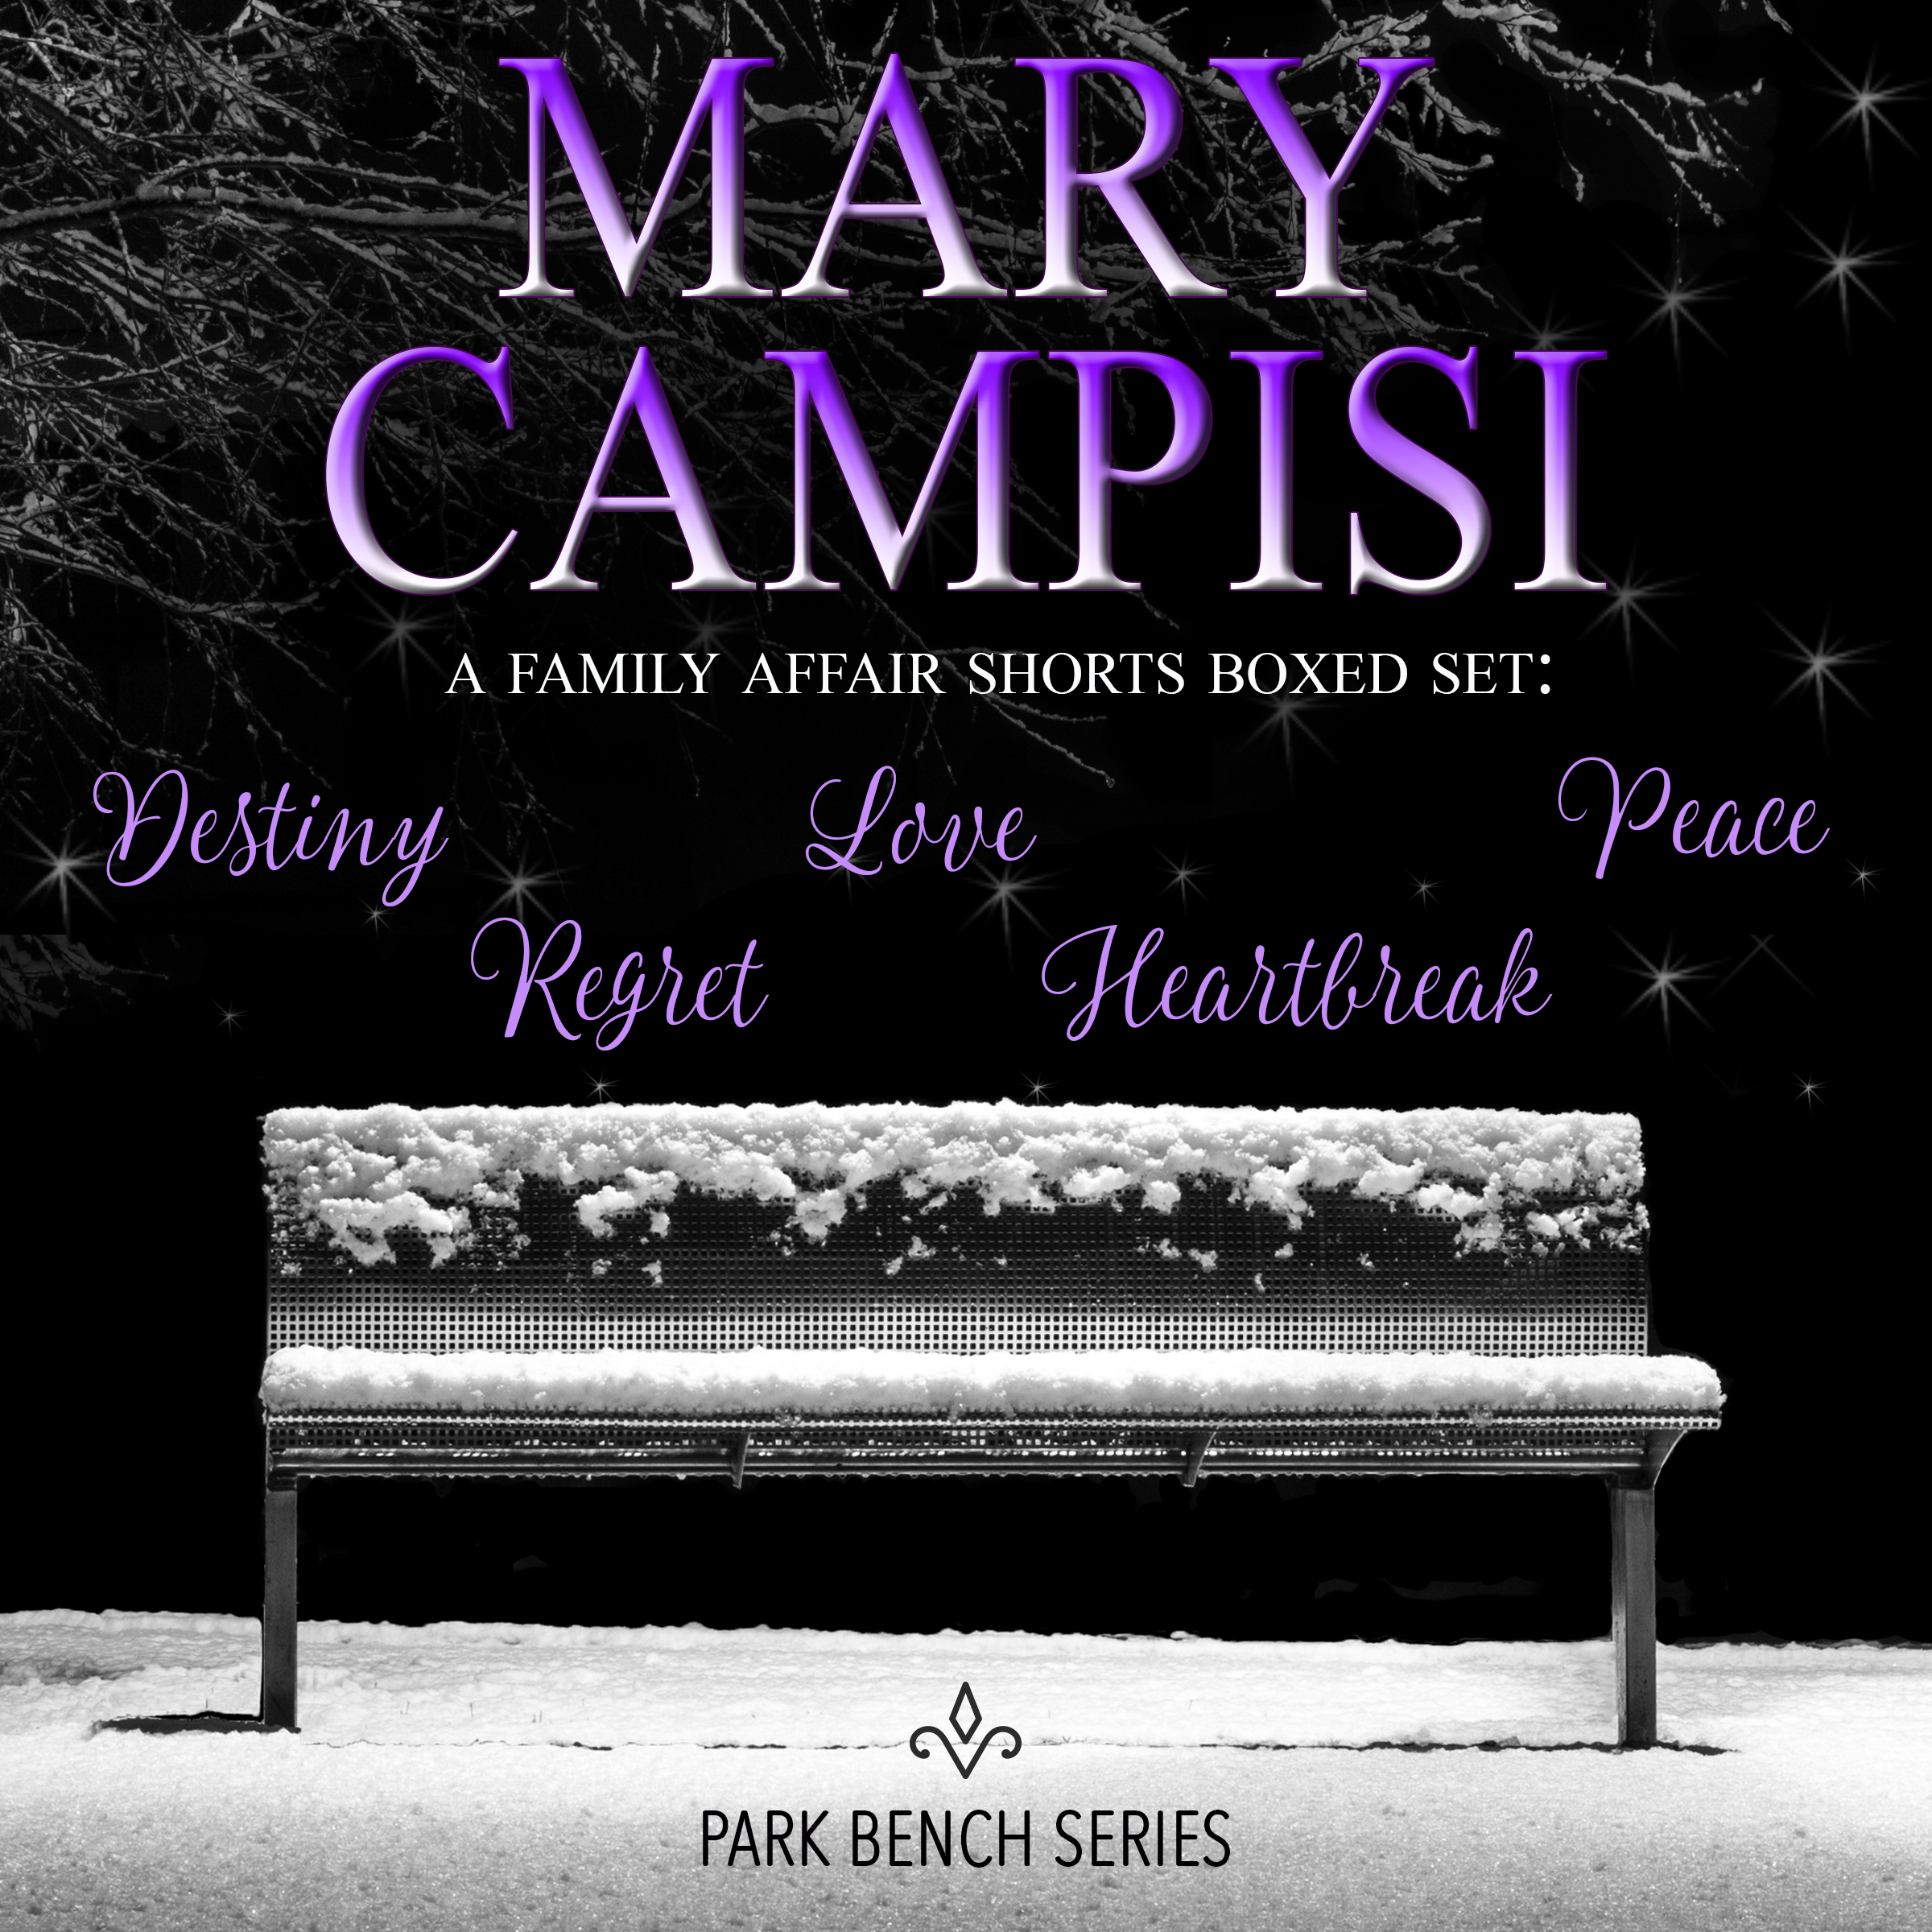 A Family Affair Shorts Boxed Set audiobook by Mary Campisi